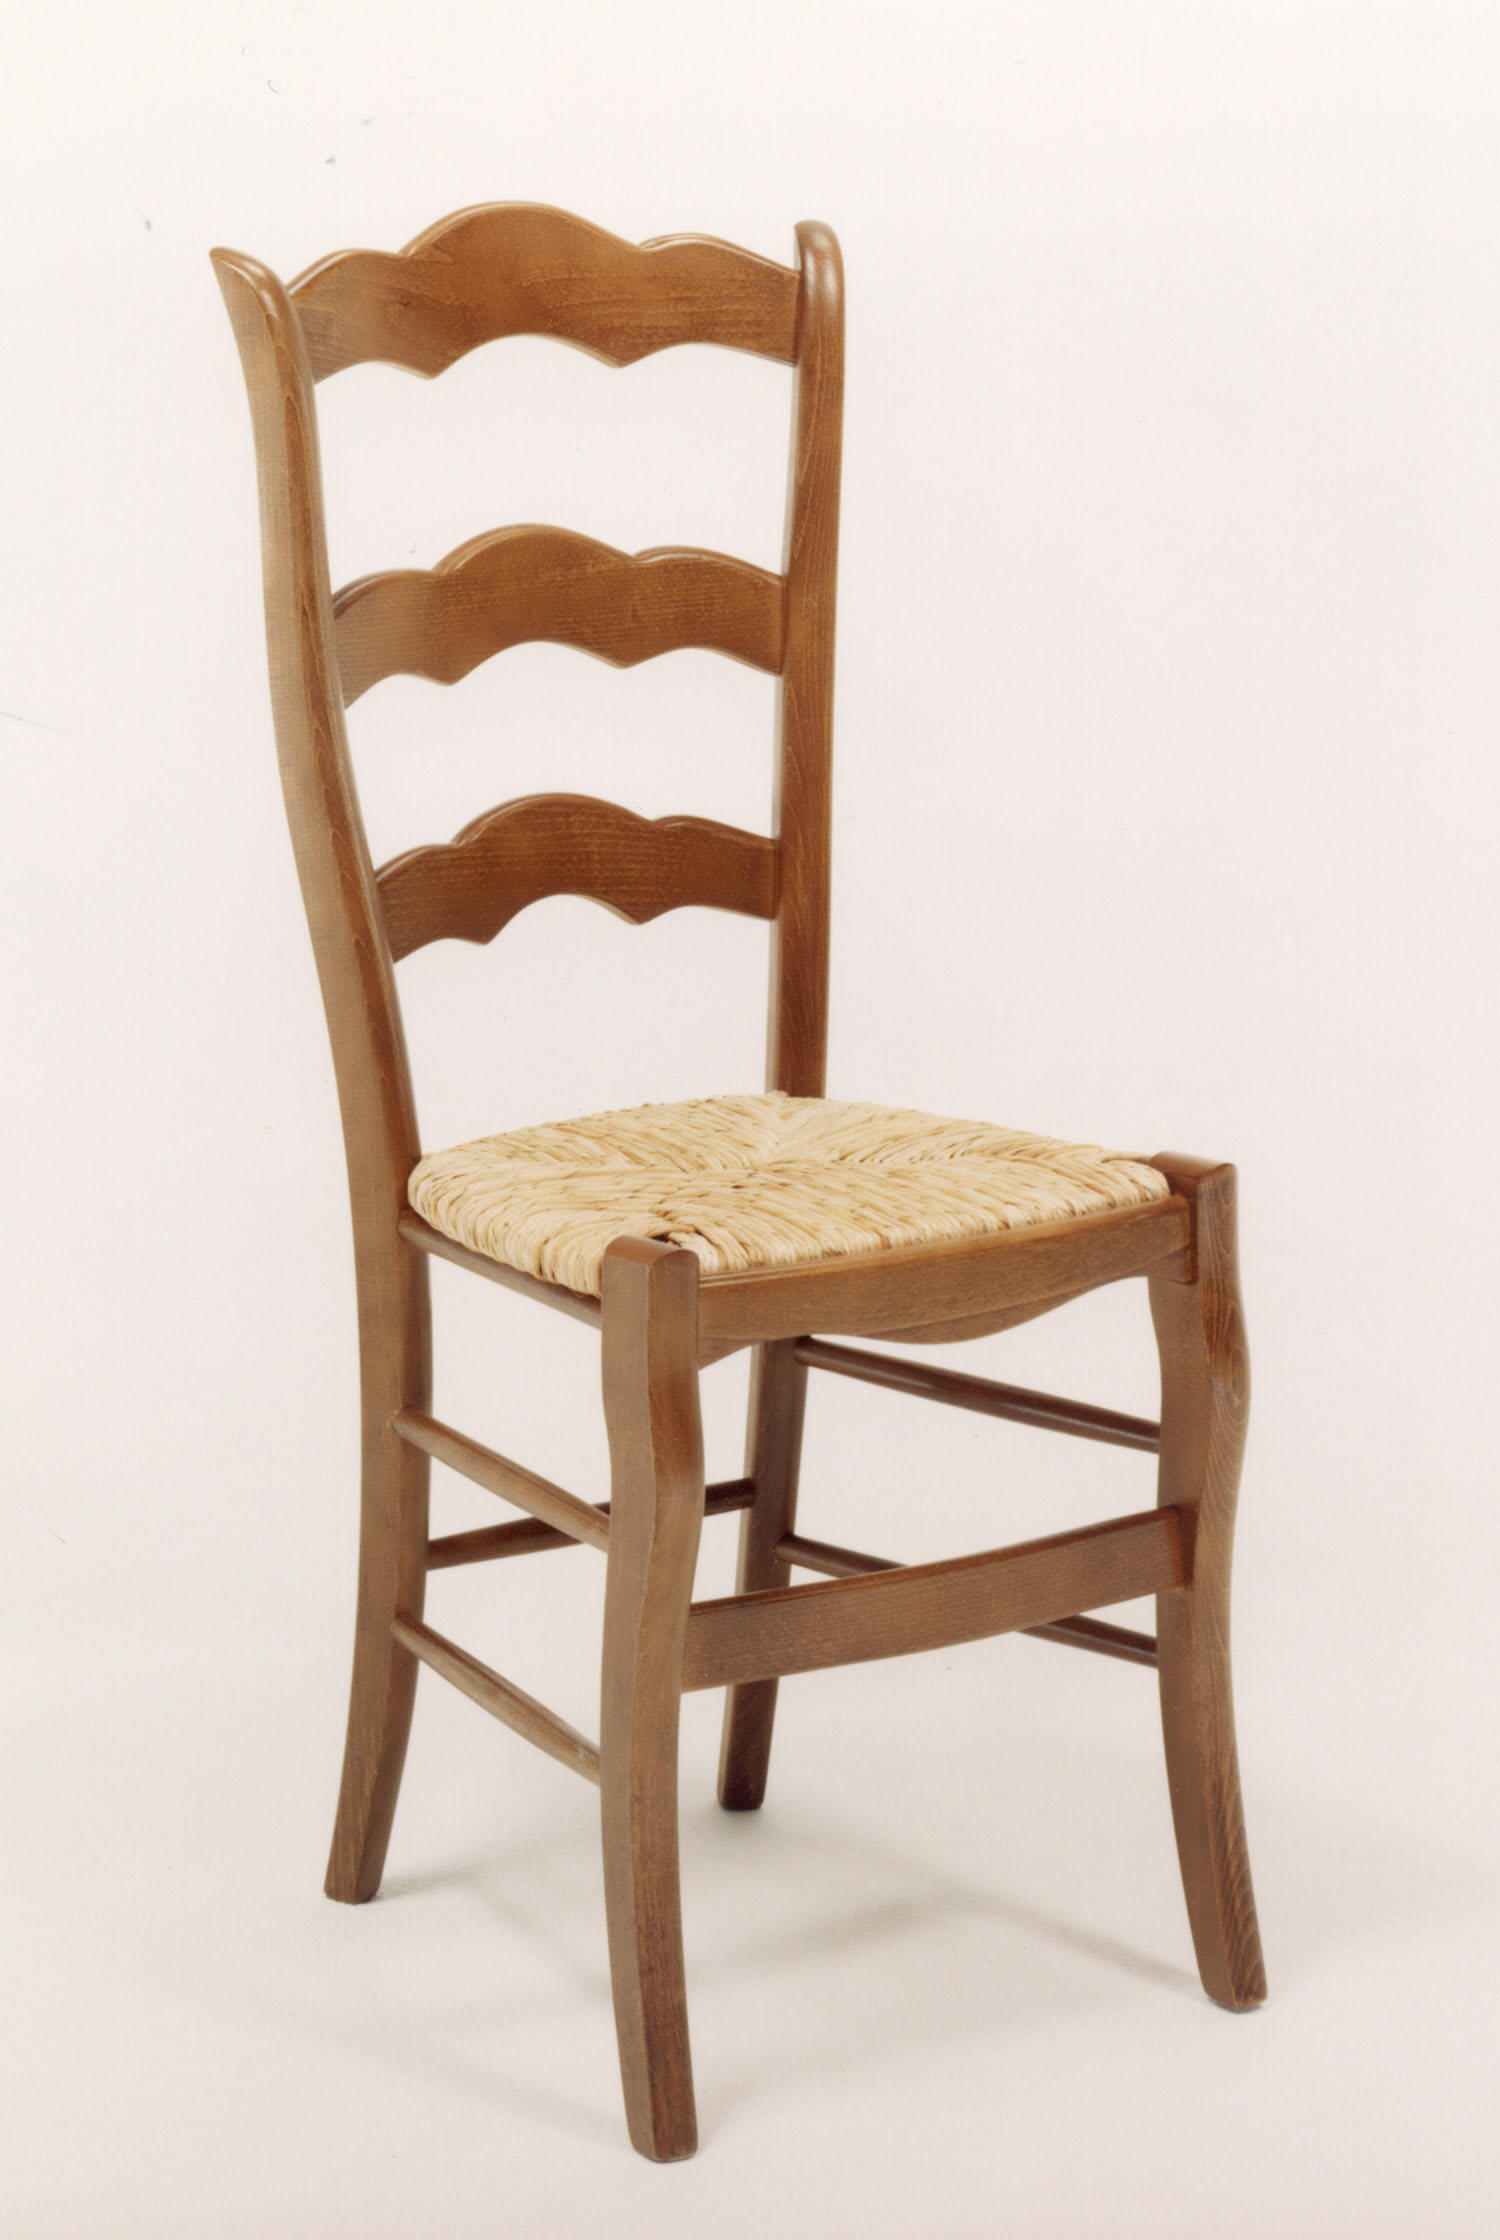 Make Sure To Prepare Your Chairs Before You Replace The Fabric. Assess The  Chairs For Repairs To Joints And Woodwork, And Glue As Necessary.